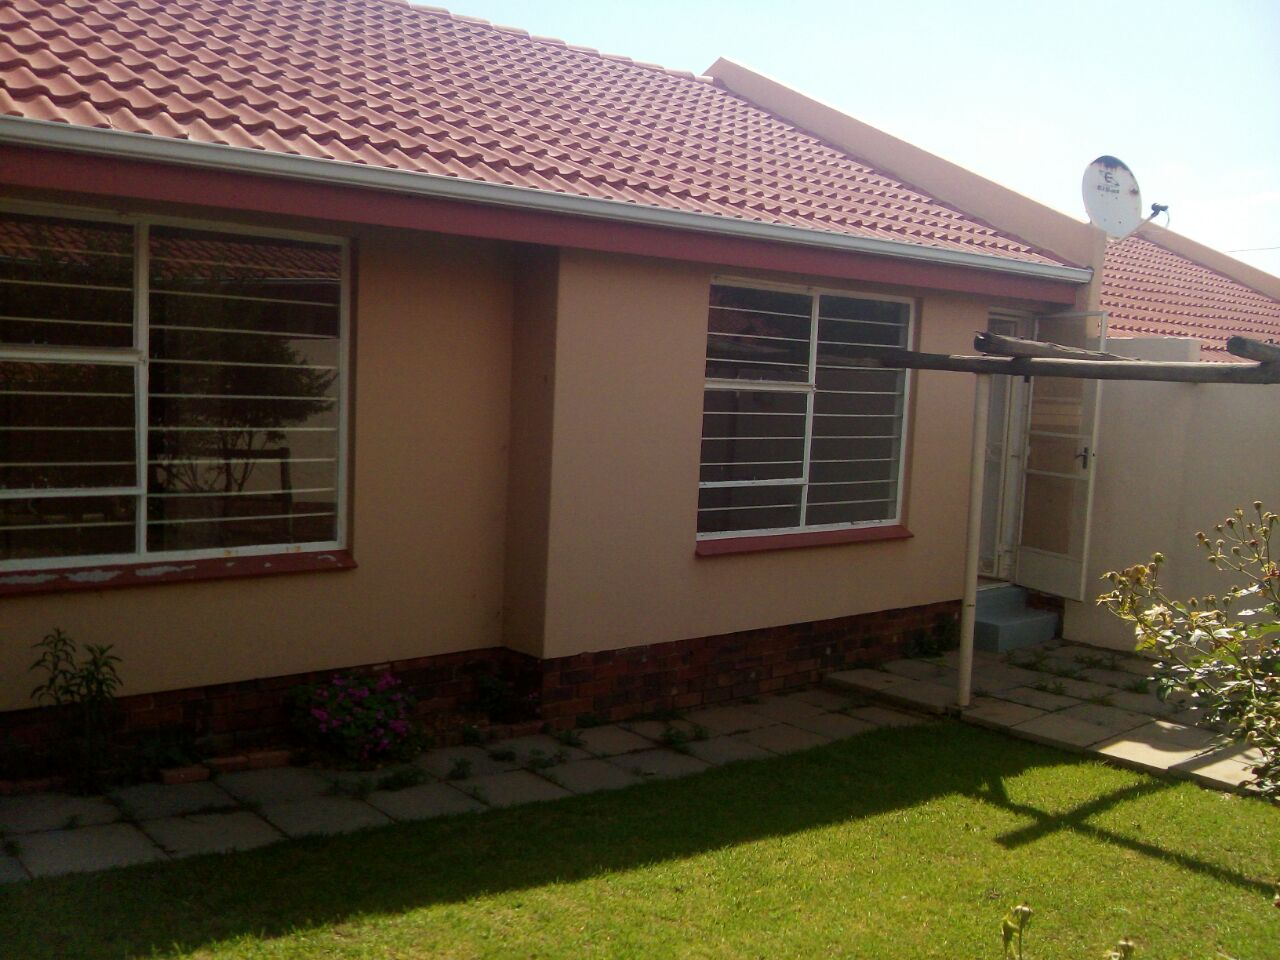 2 Bedroom Townhouse for sale in Sunninghill ENT0074719 : photo#1